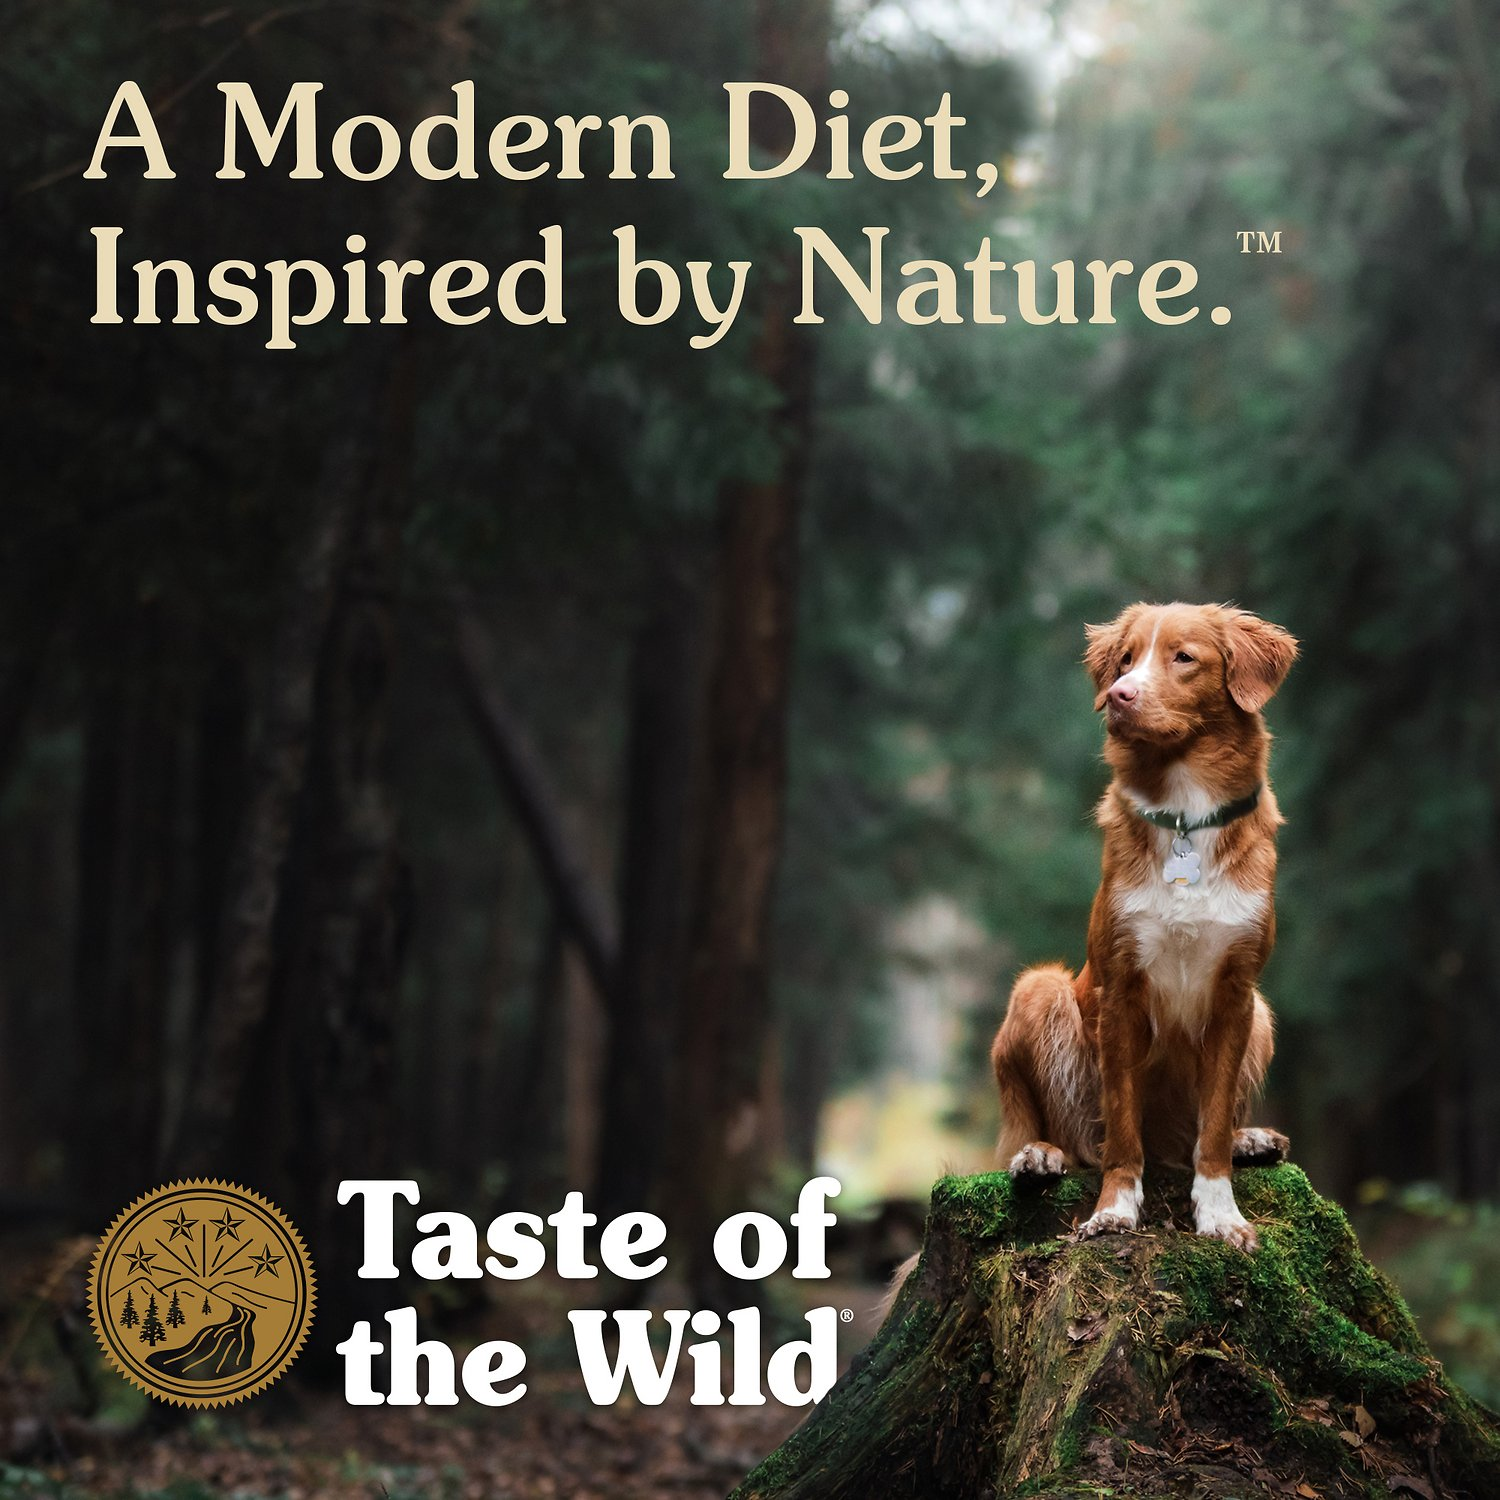 Taste Of The Wild Salmon Dog Food Ingredients